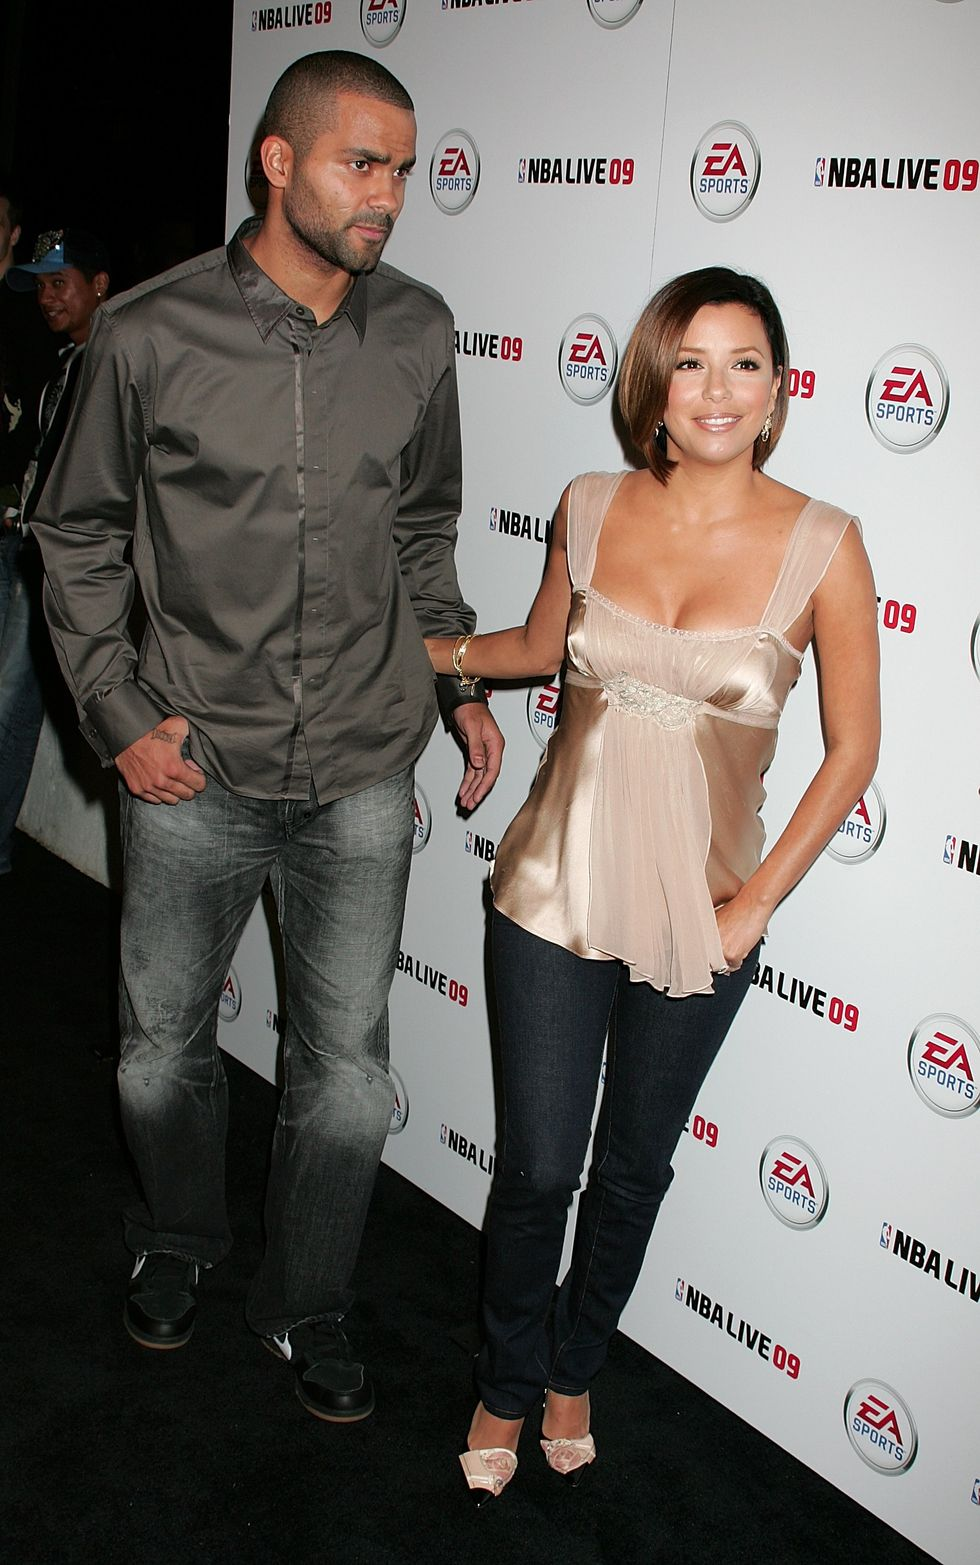 eva-longoria-nba-live-09-launch-in-hollywood-01